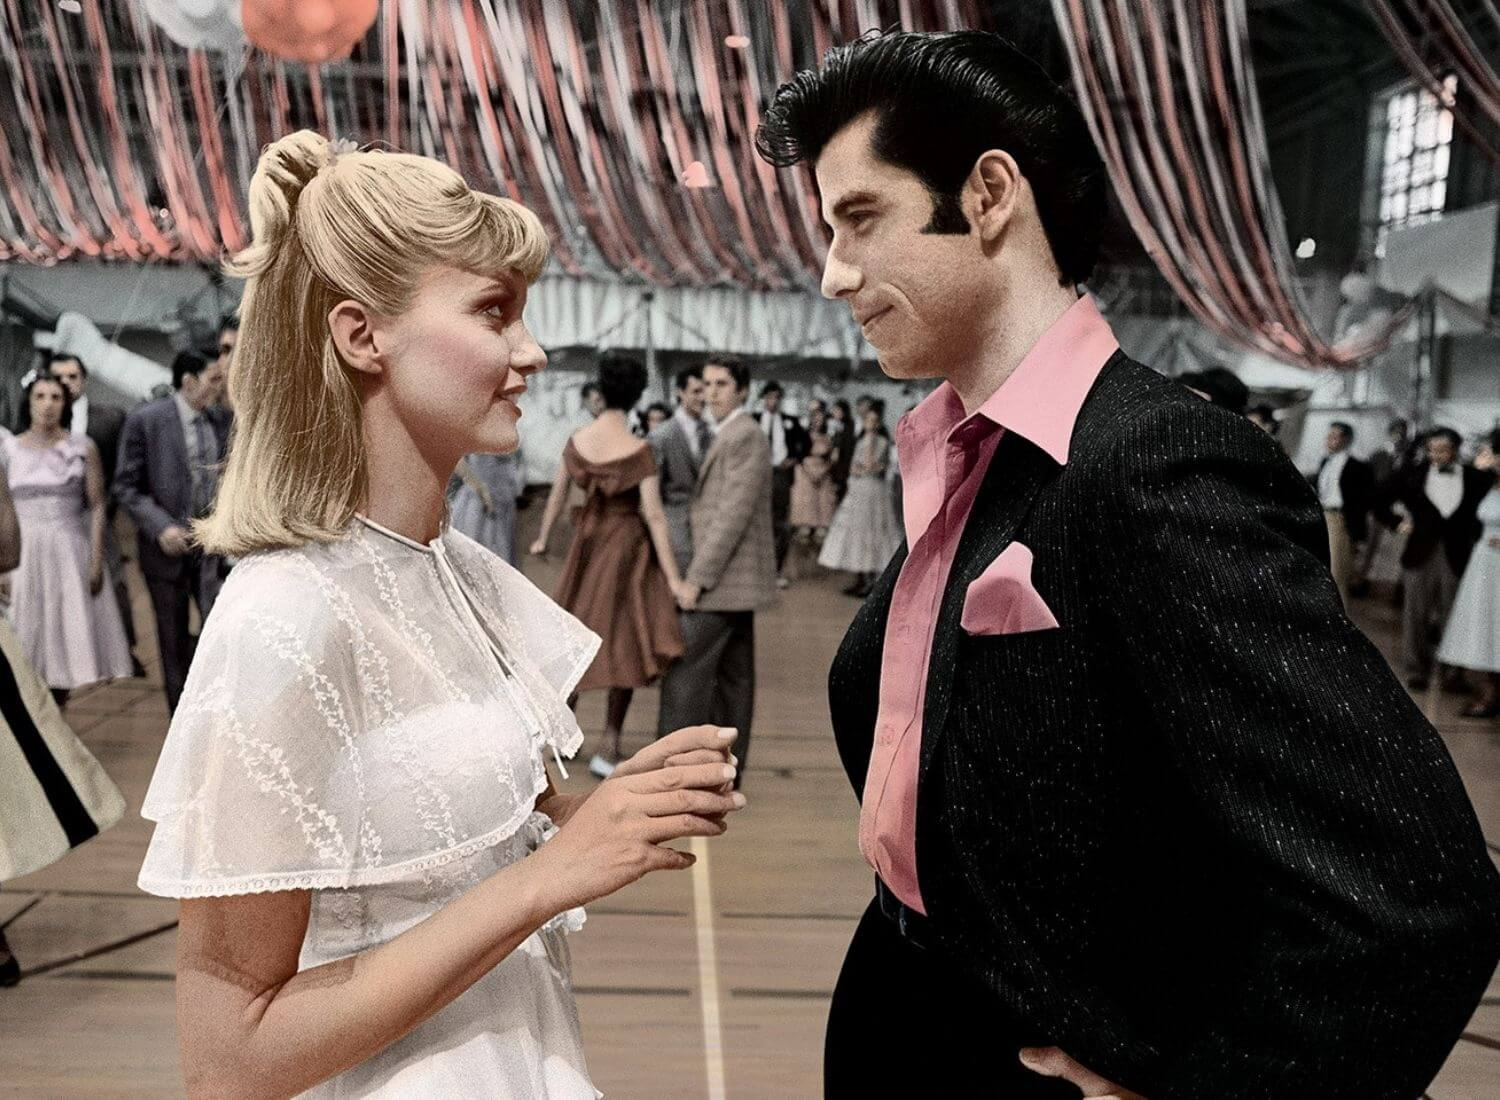 5 Weird Facts About Grease, The Movie